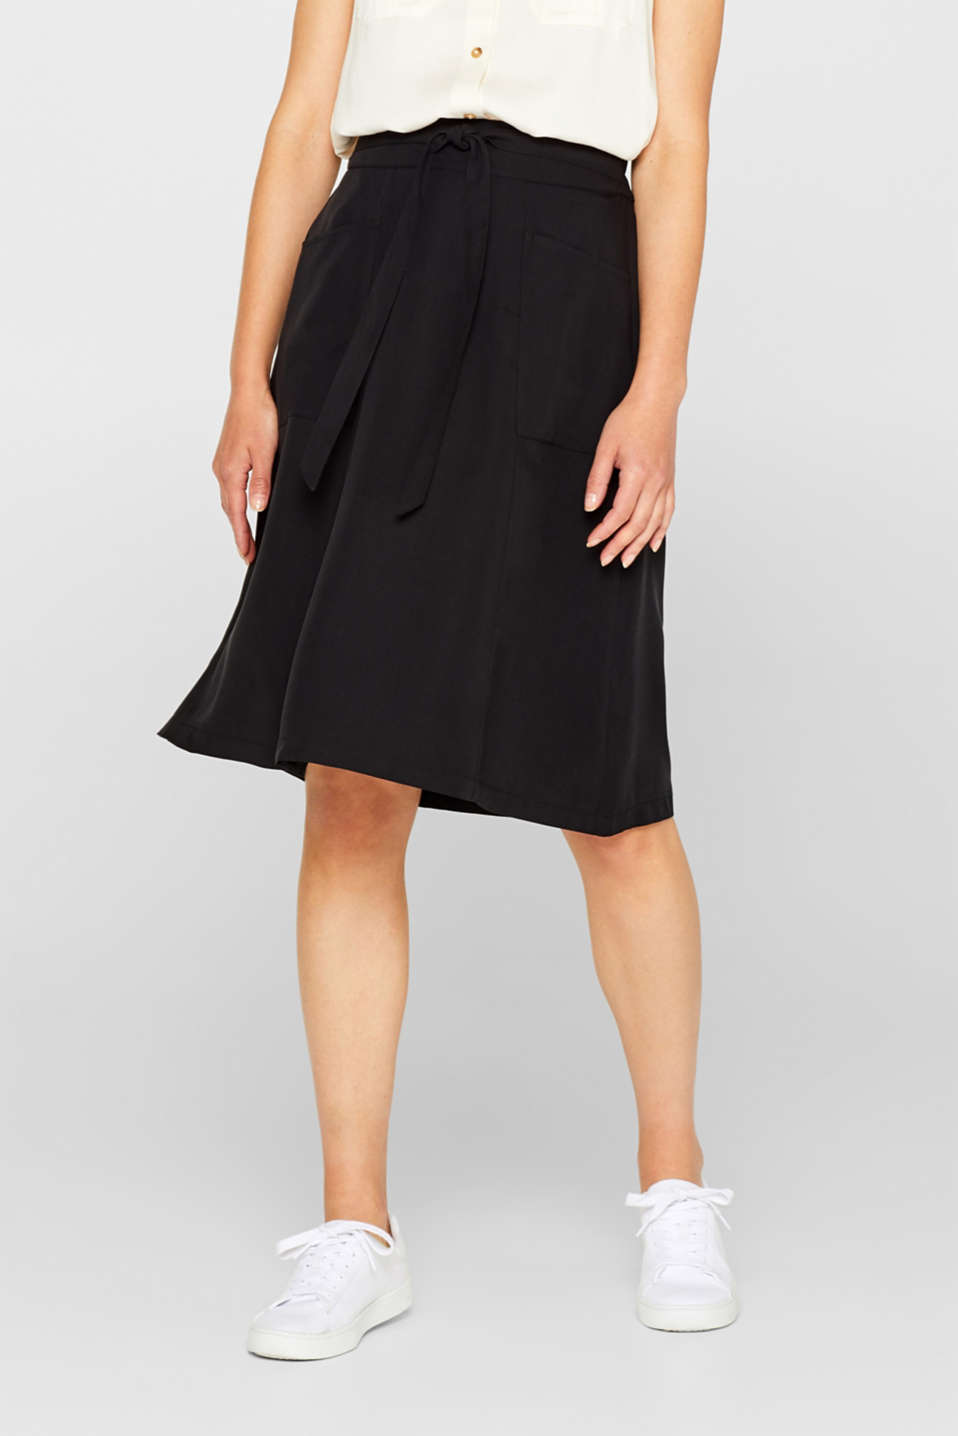 A-line skirt with pockets, 100% lyocell, BLACK, detail image number 5